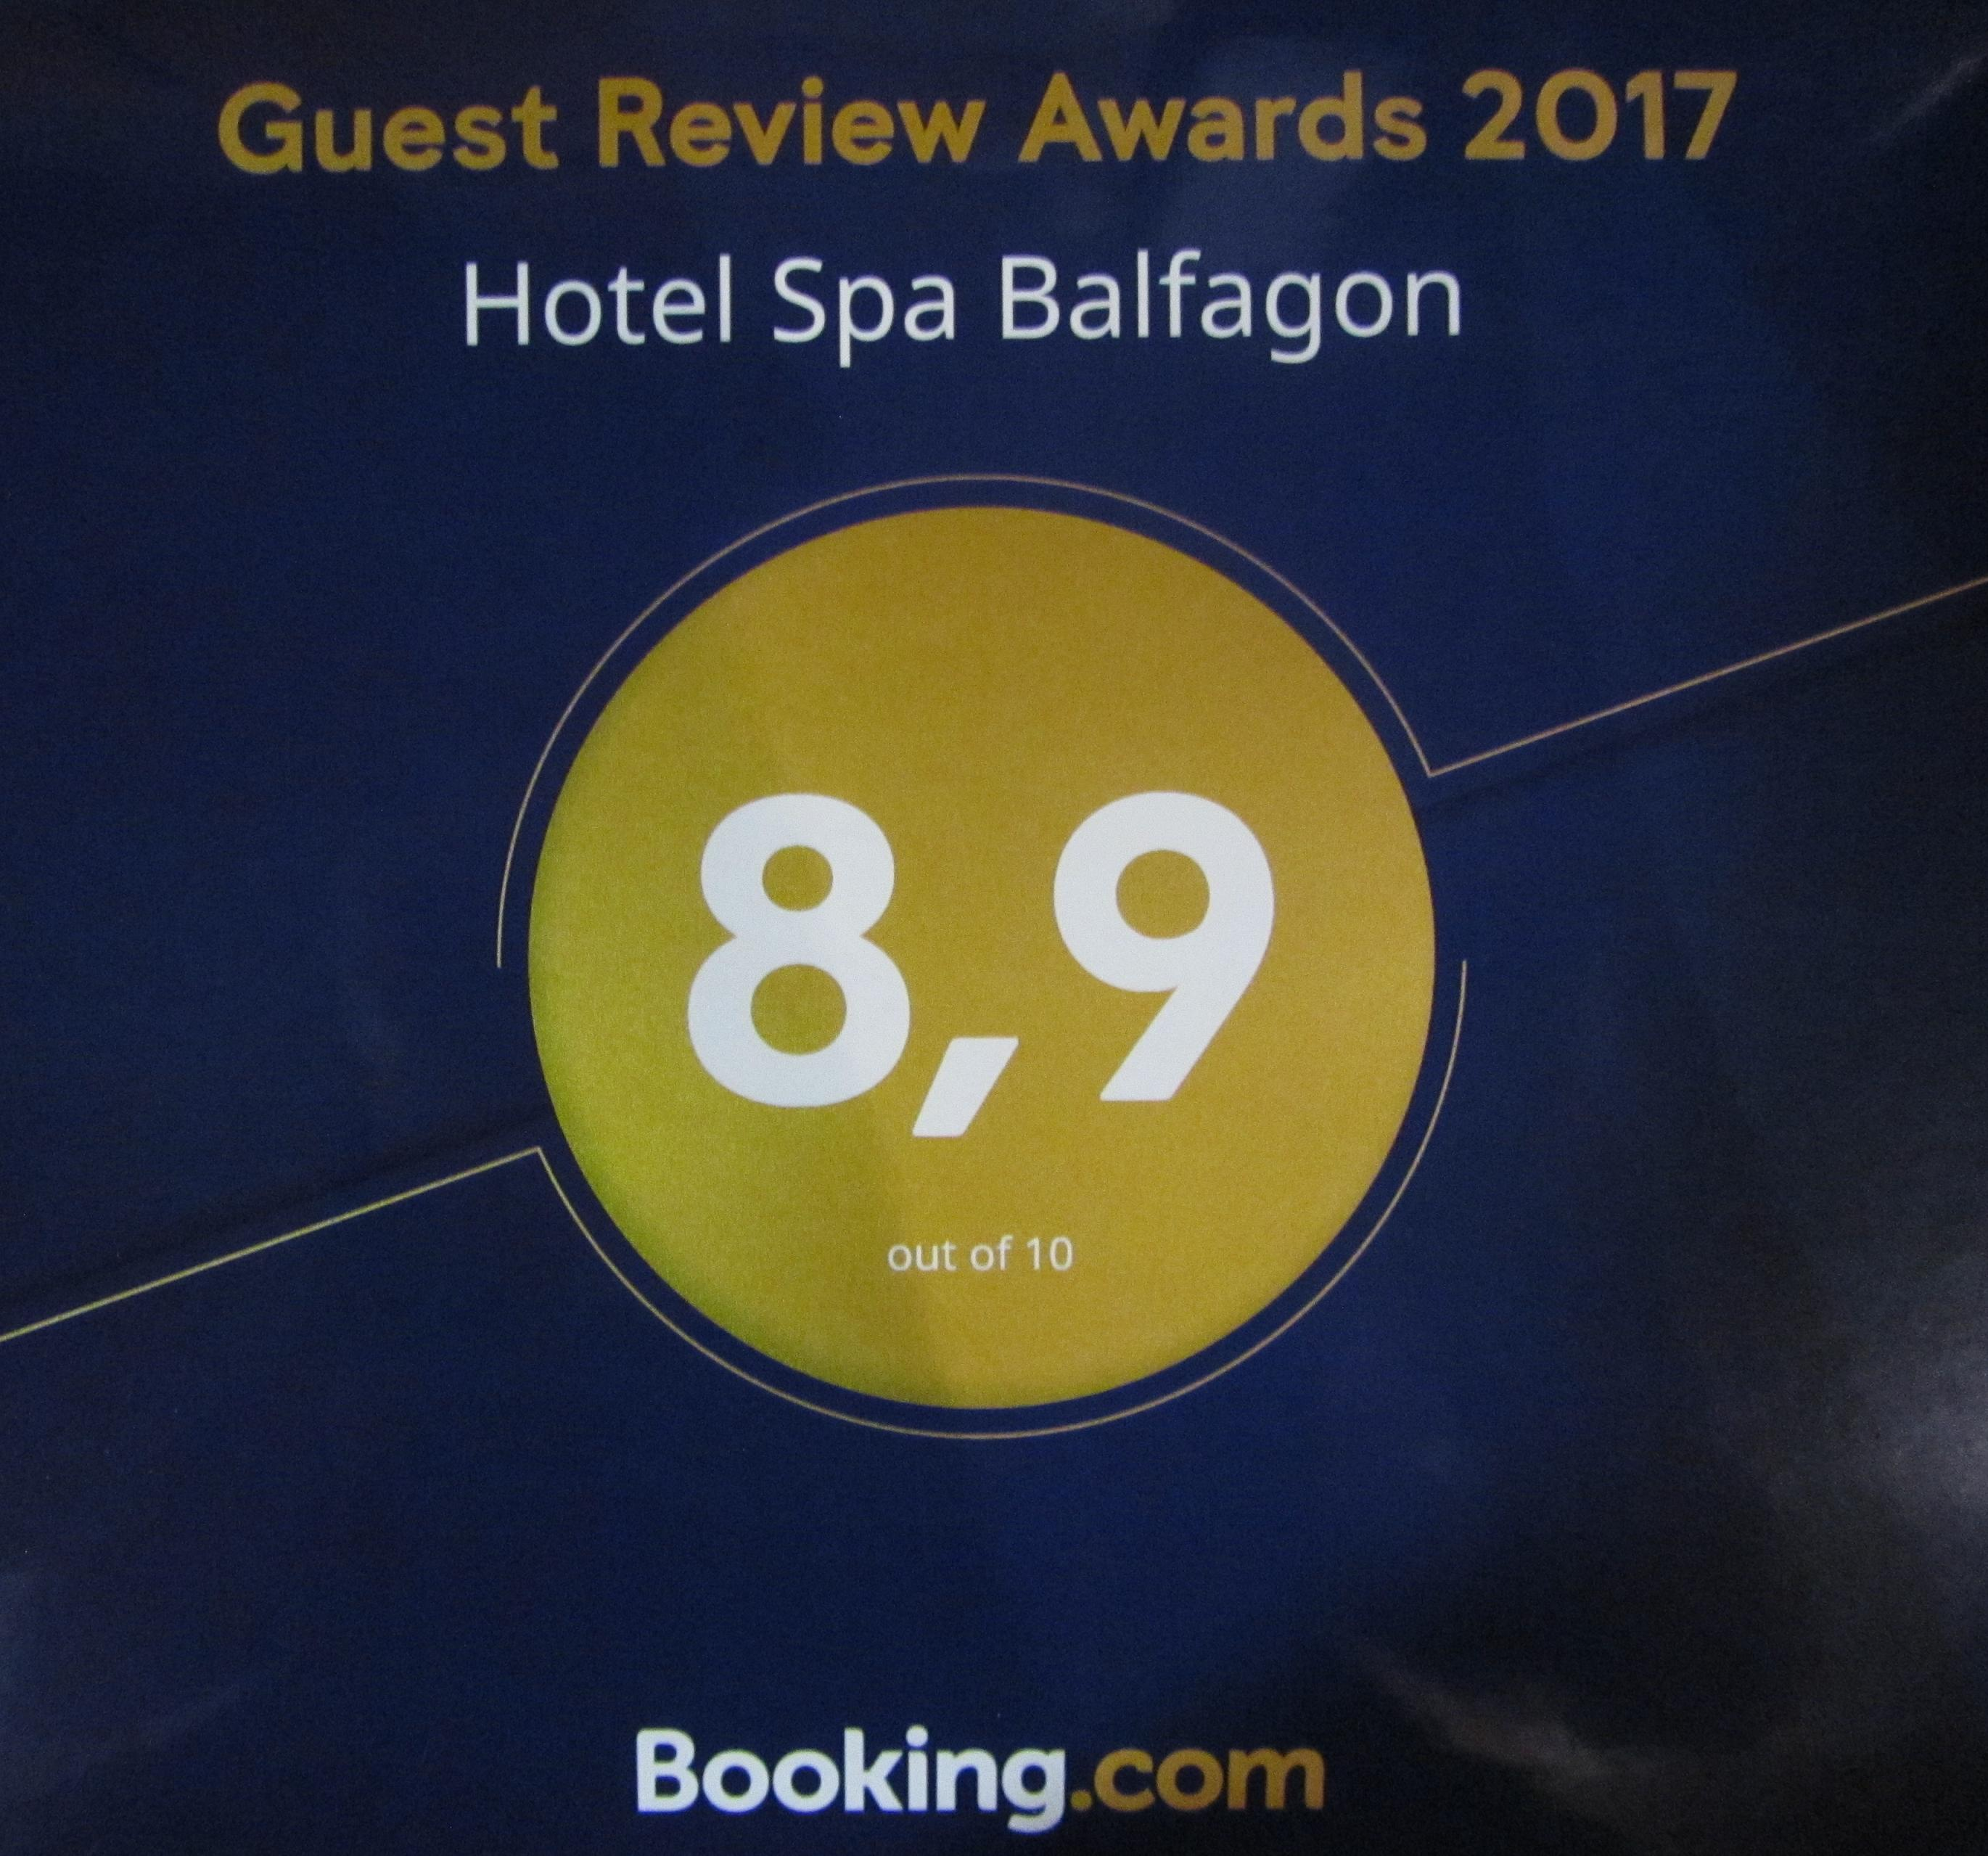 Guest Review Awards Booking 2017